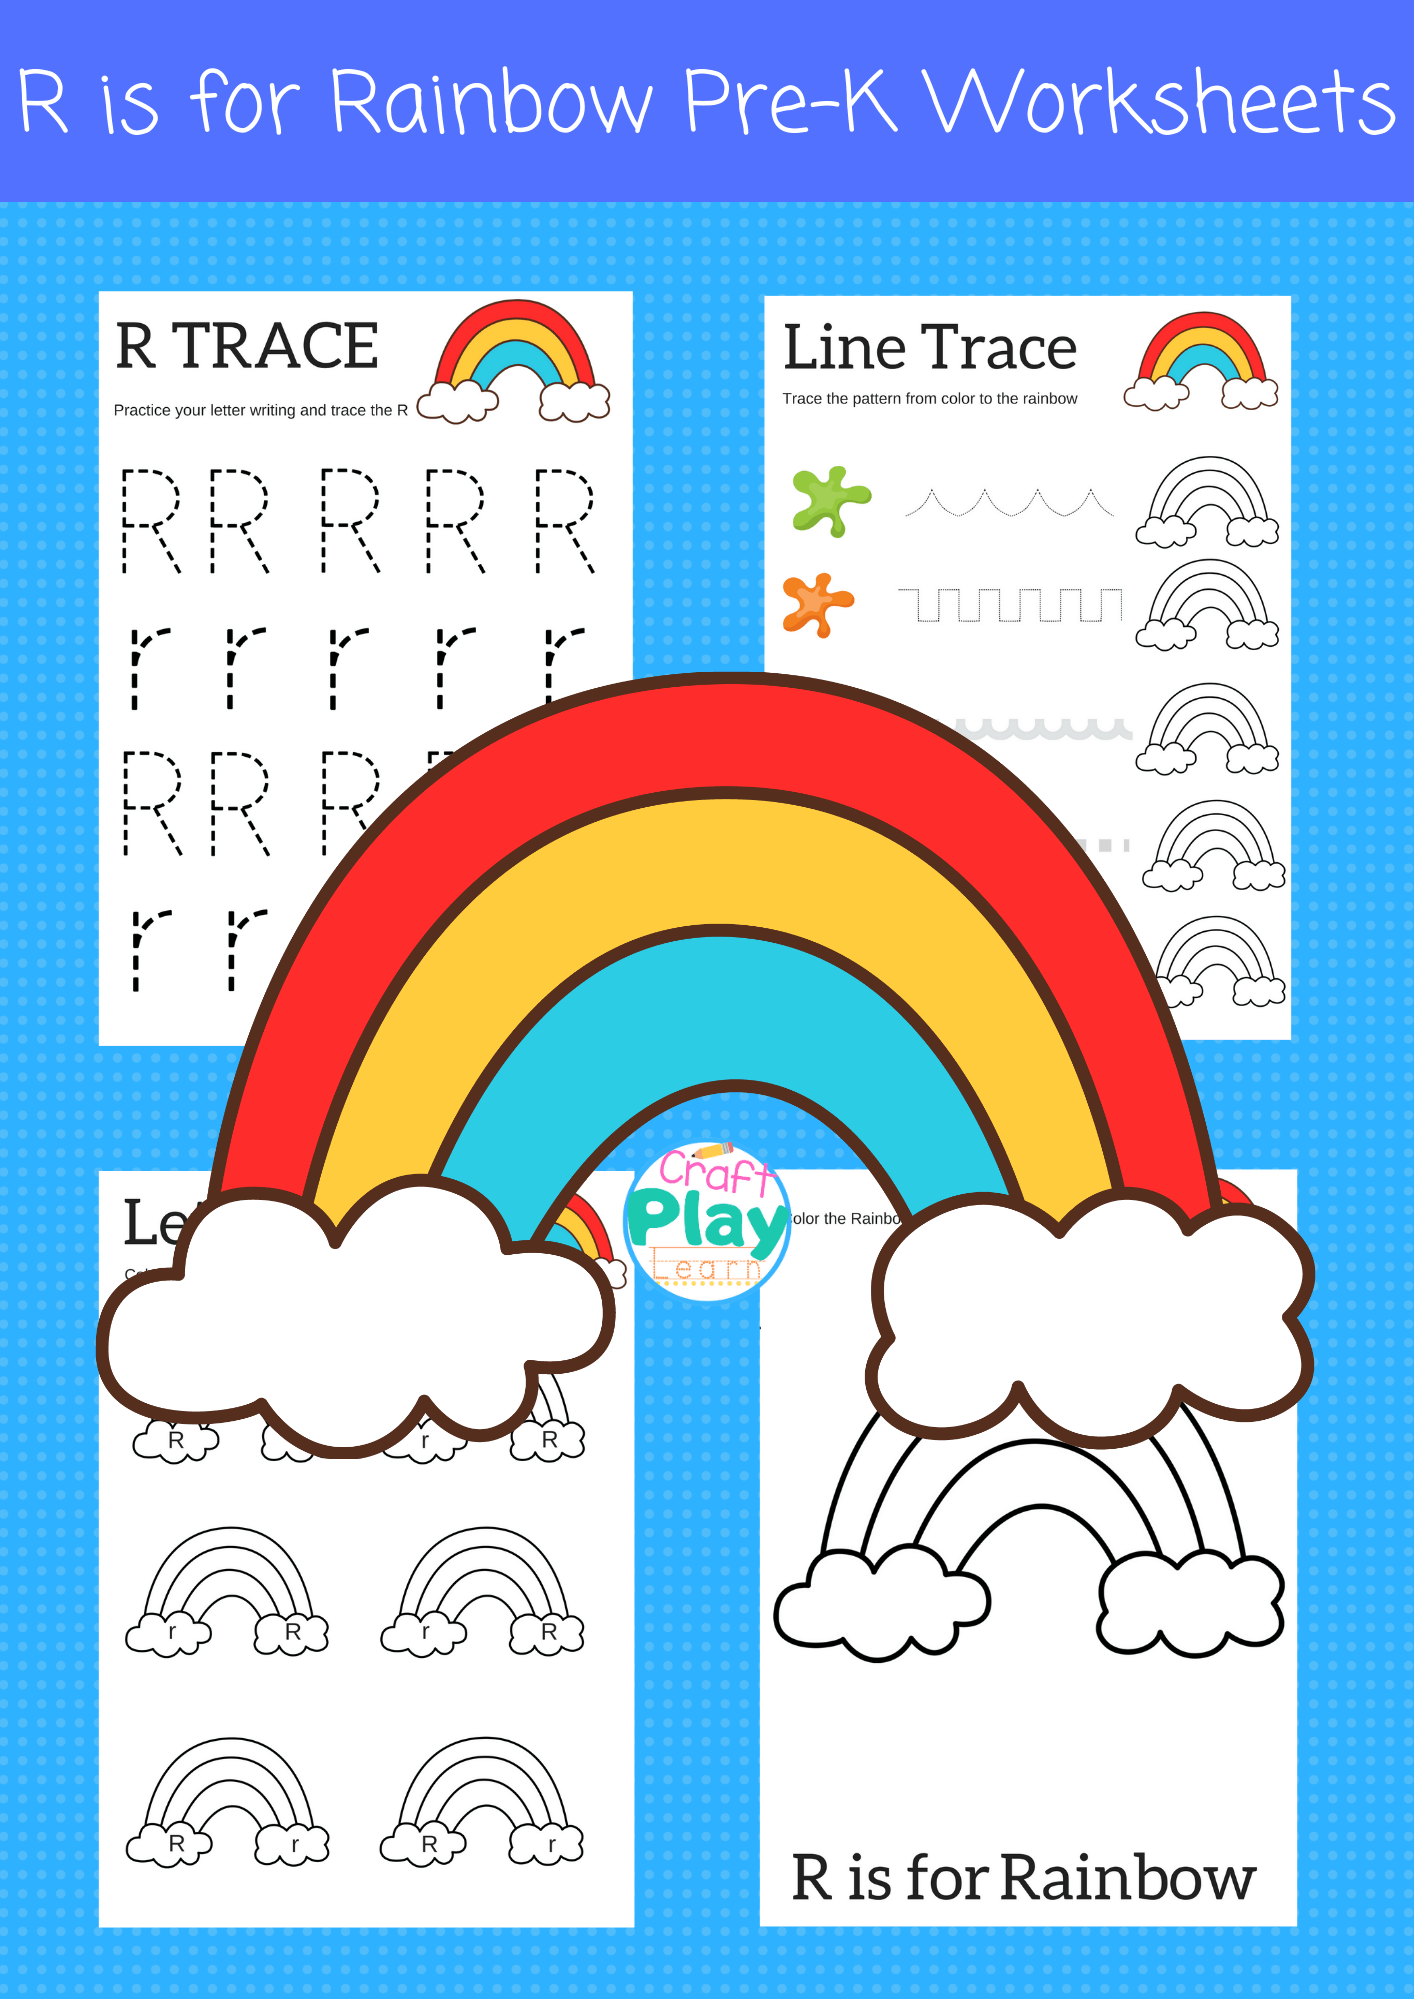 Letter R Worksheets For Preschool Kids - Craft Play Learn